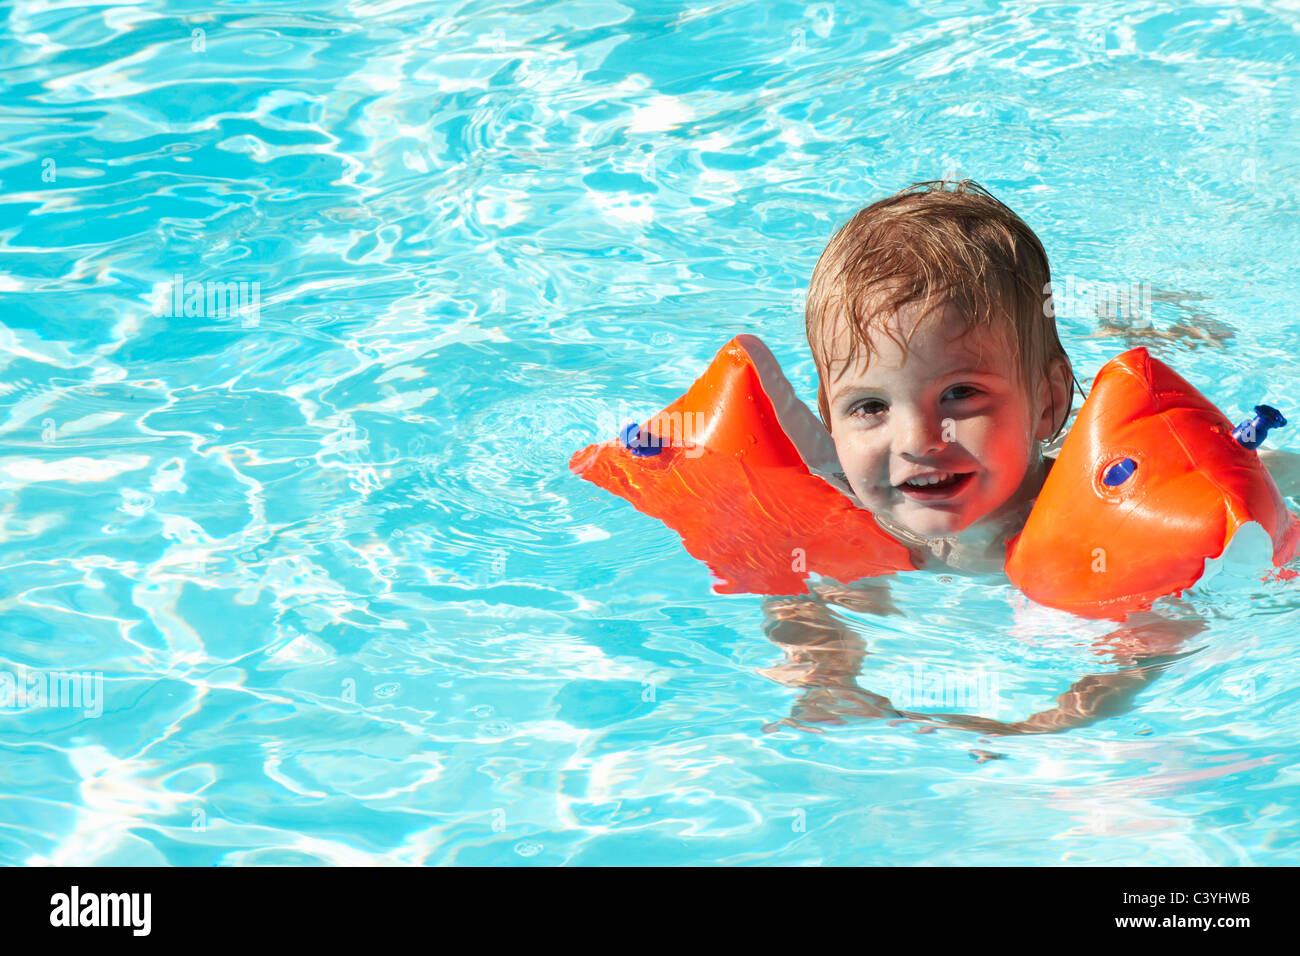 Baby boy swimming with water wings - Stock Image